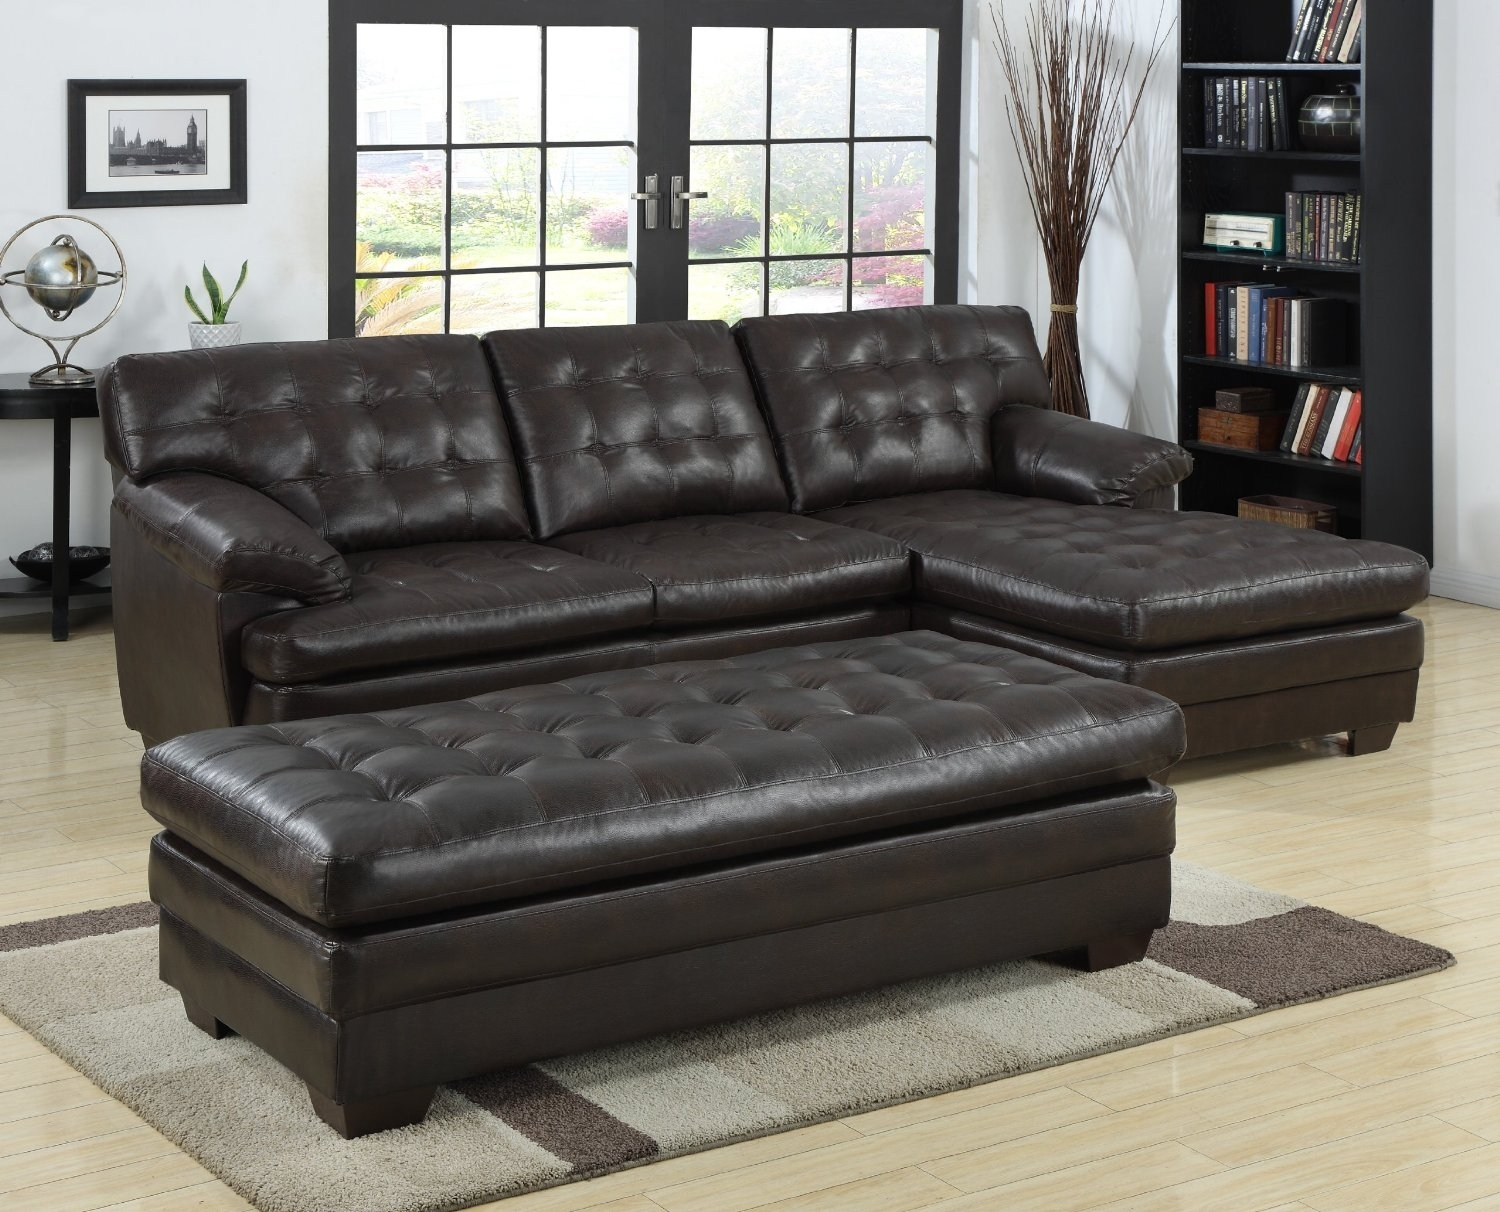 Black Tufted Leather Sectional Sofa With Chaise And Bench Seat Plus With Tufted Sectional Sofas With Chaise (Image 1 of 10)